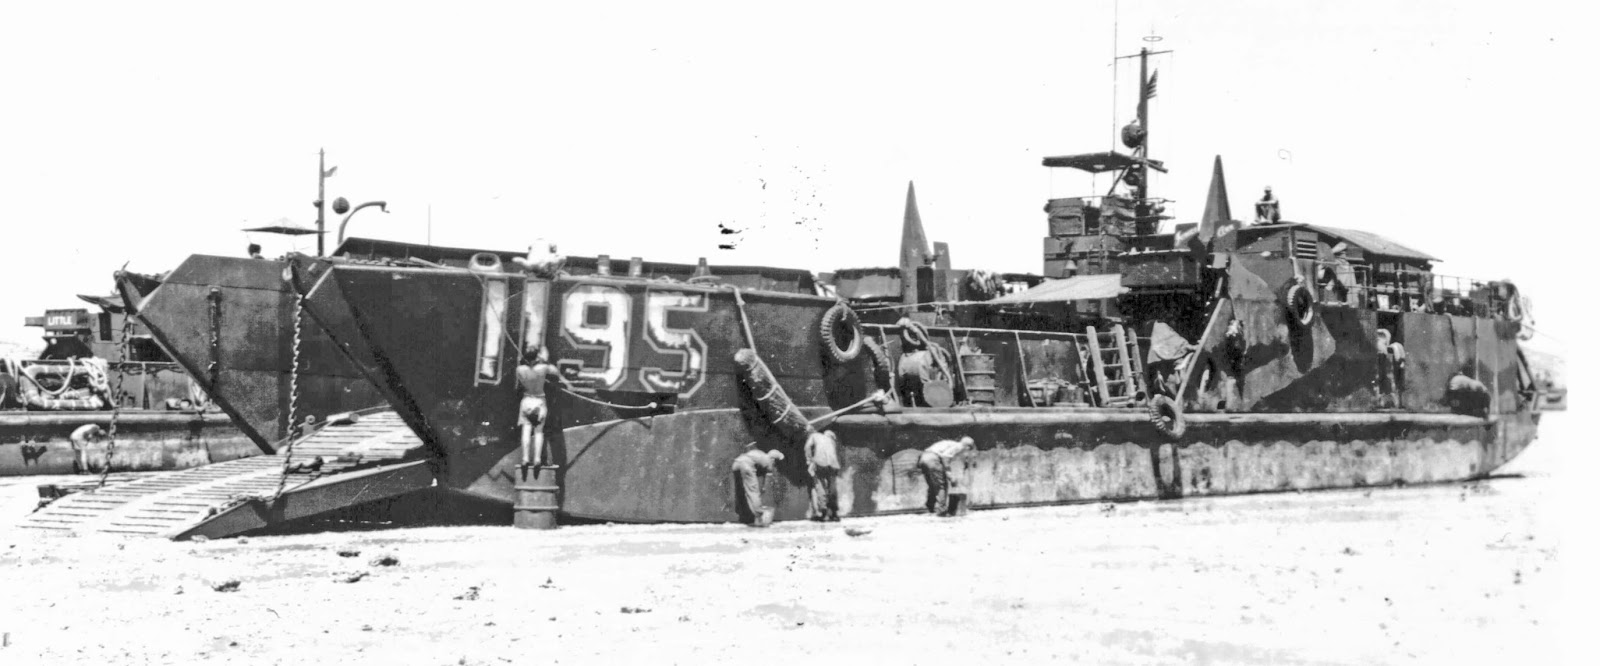 lct 1 Landing craft, tank - lct(6) most recent update: may 4, 2015 a total of 1,435 landing craft, tank, or lcts, were built in wwii by 5 shipyards and 8 steel fabricators.